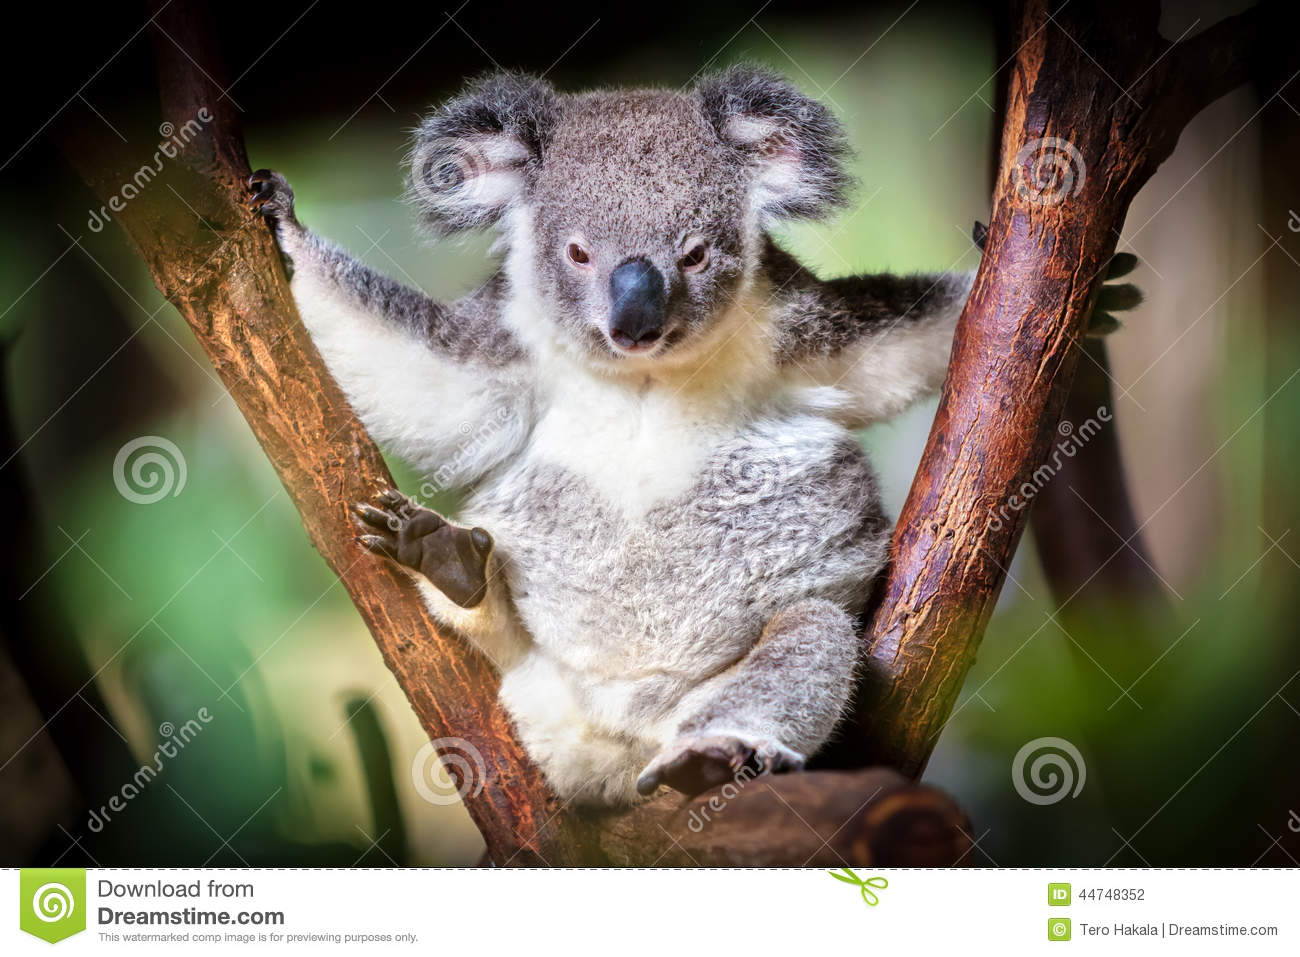 Koala bear sitting on a trunk with green and black background